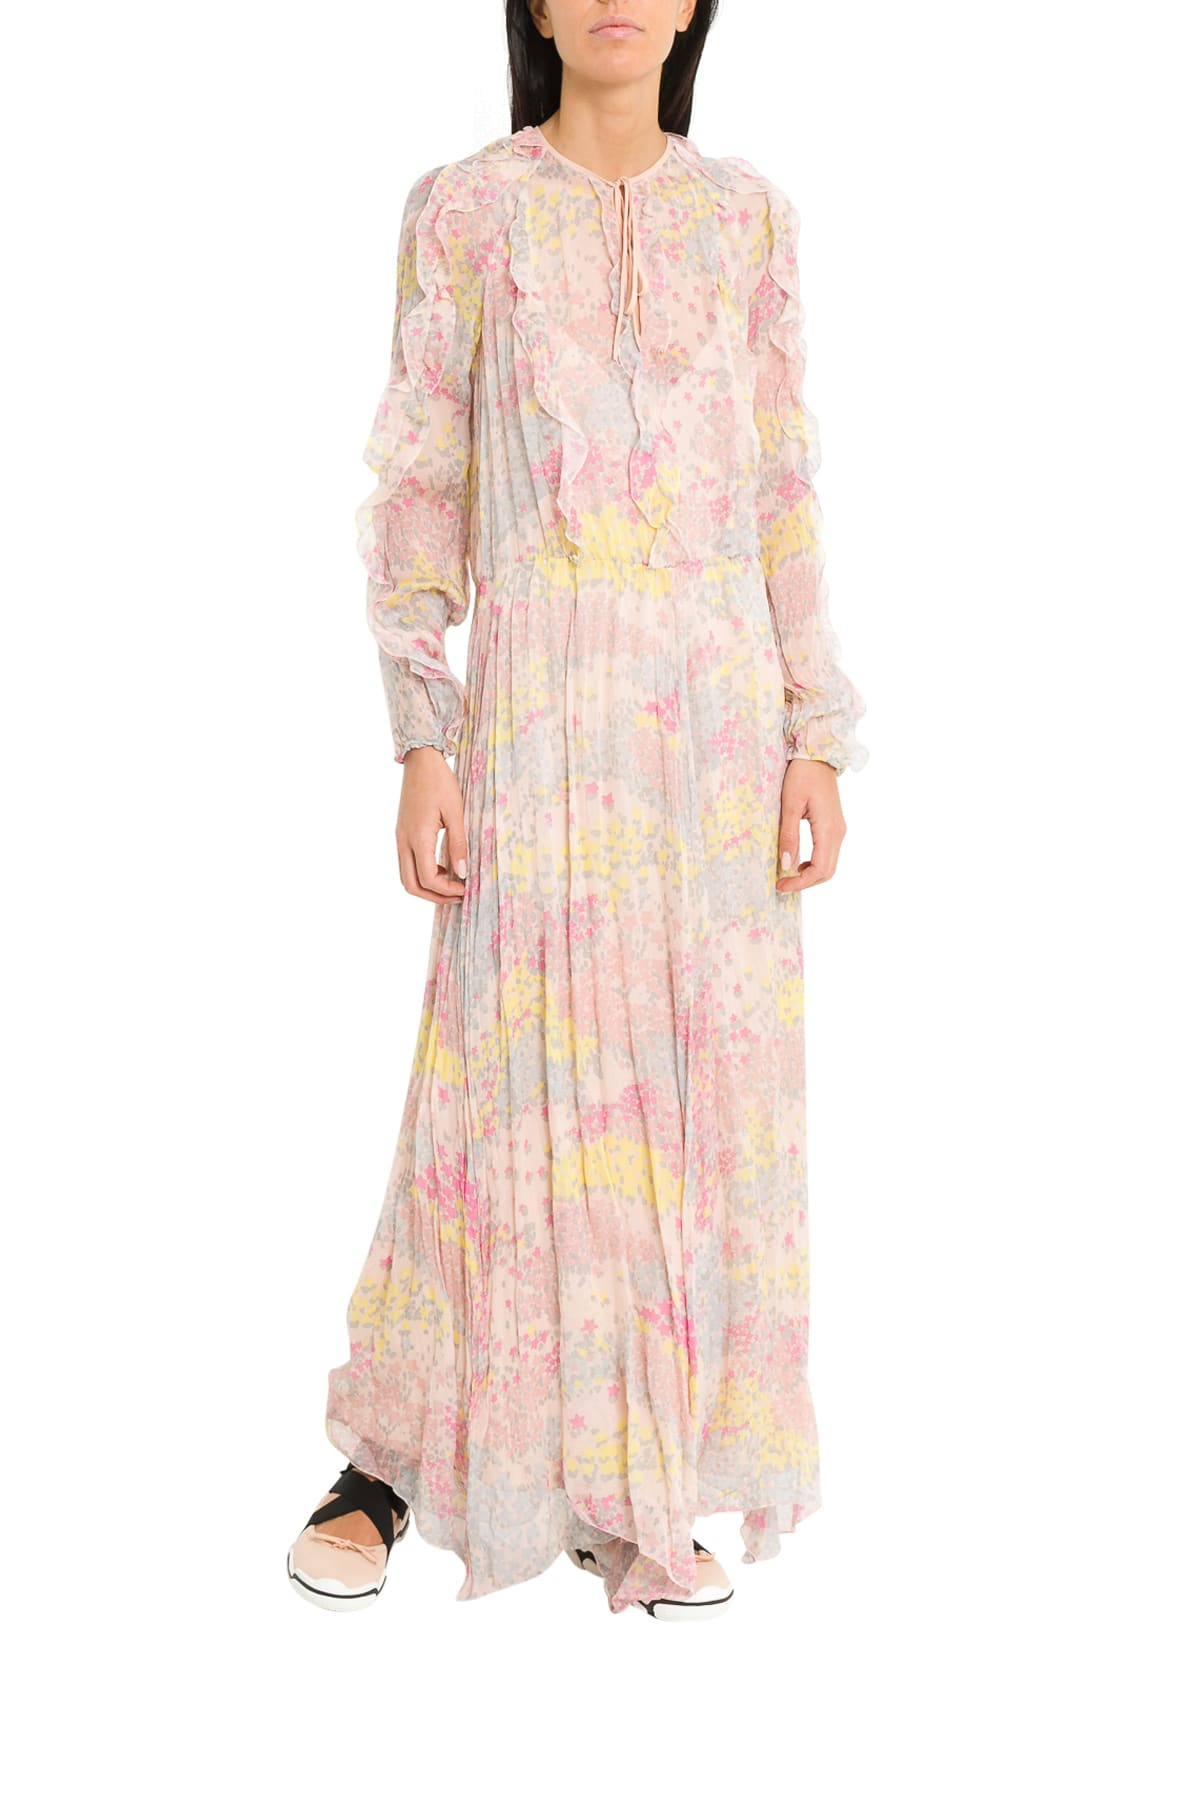 RED Valentino Cascading Stars Printed Chiffon Long Dress